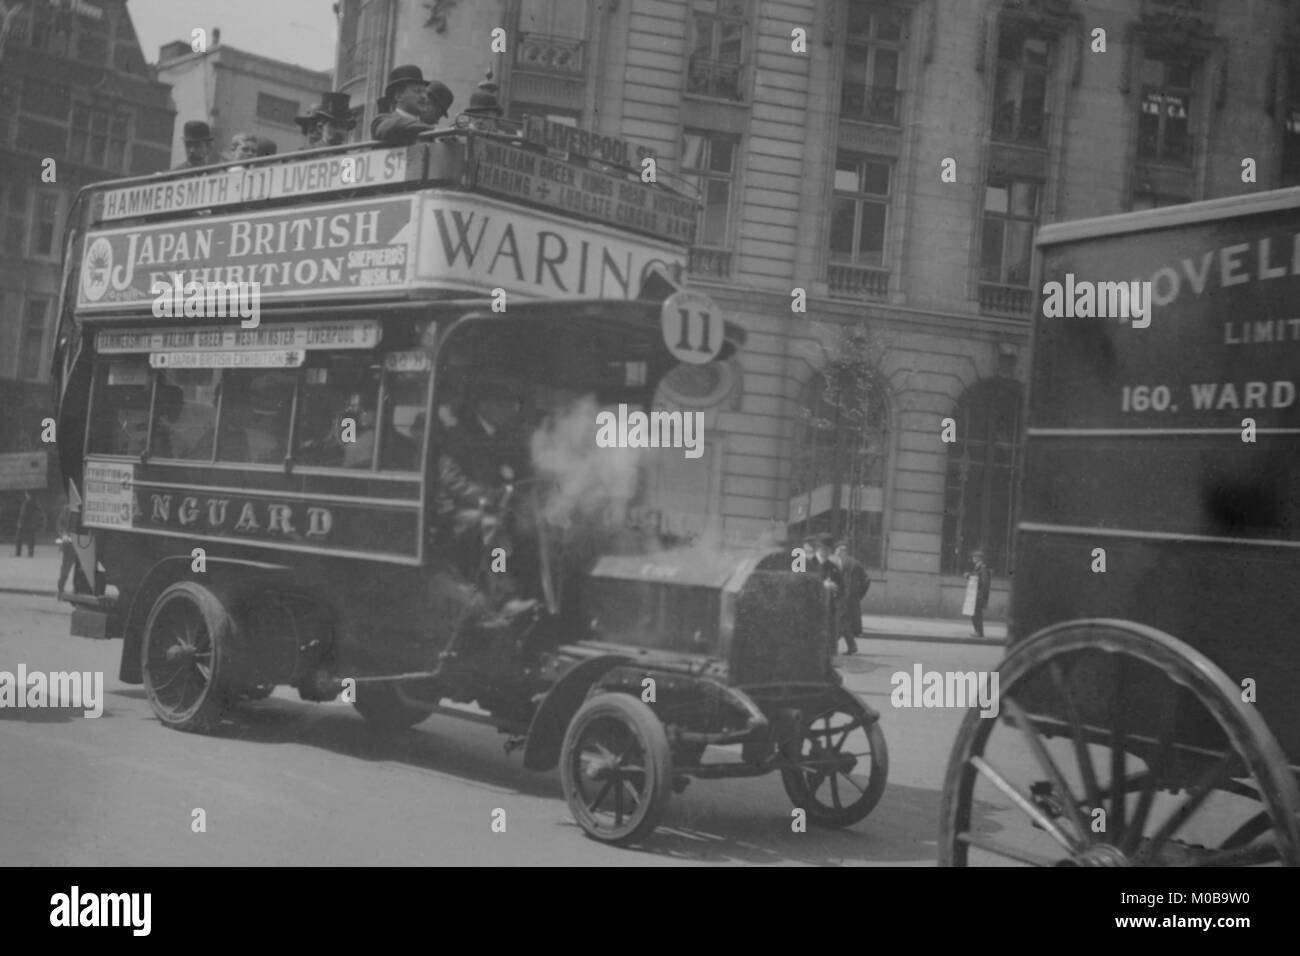 Omnibus on London Thoroughfare carries Advertisements for Japanese British Exhibition - Stock Image